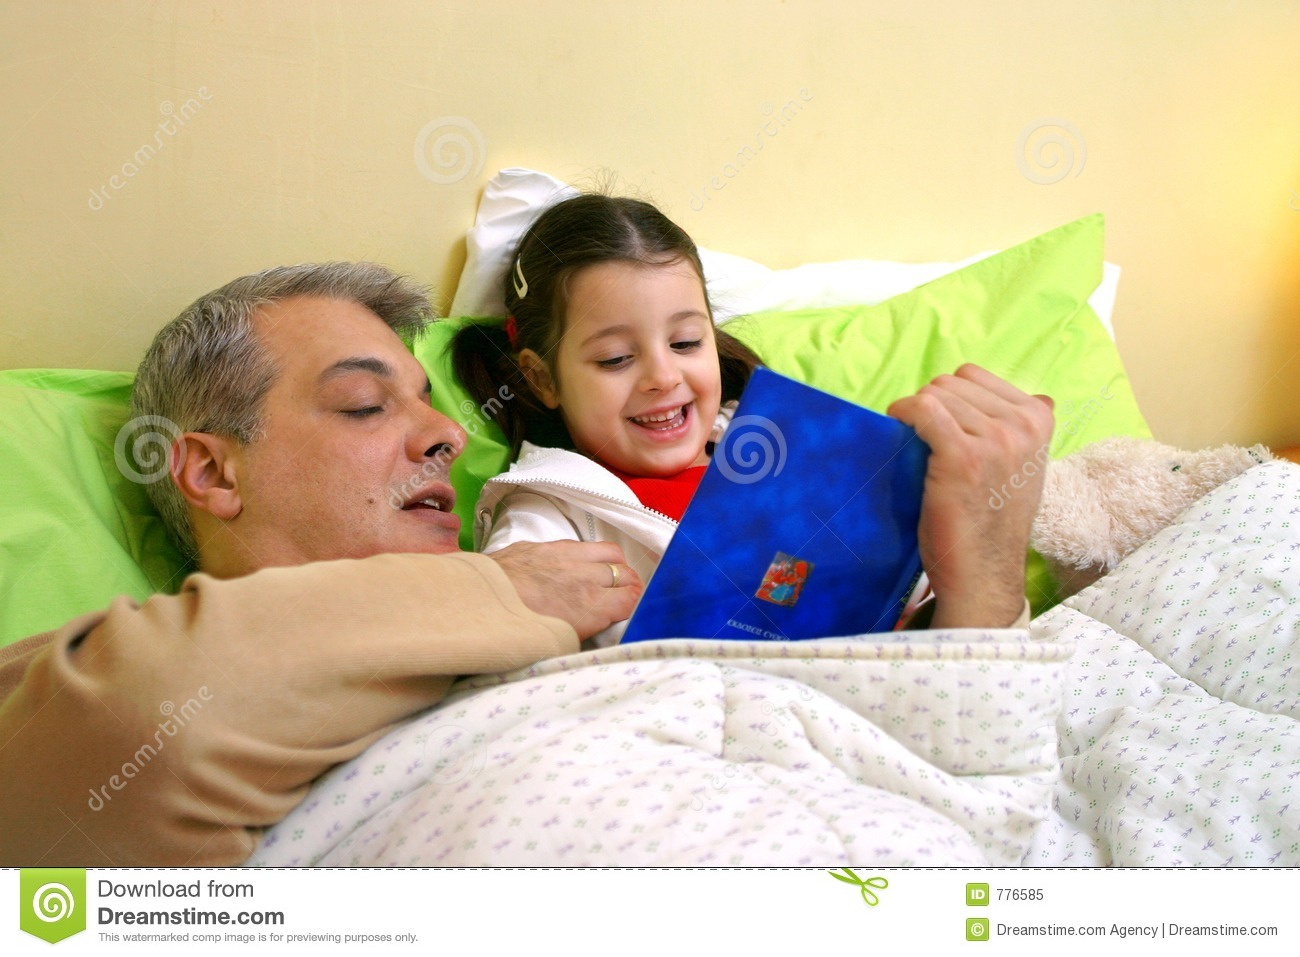 Bed time story royalty free stock photo image 776585 for Bed stories online